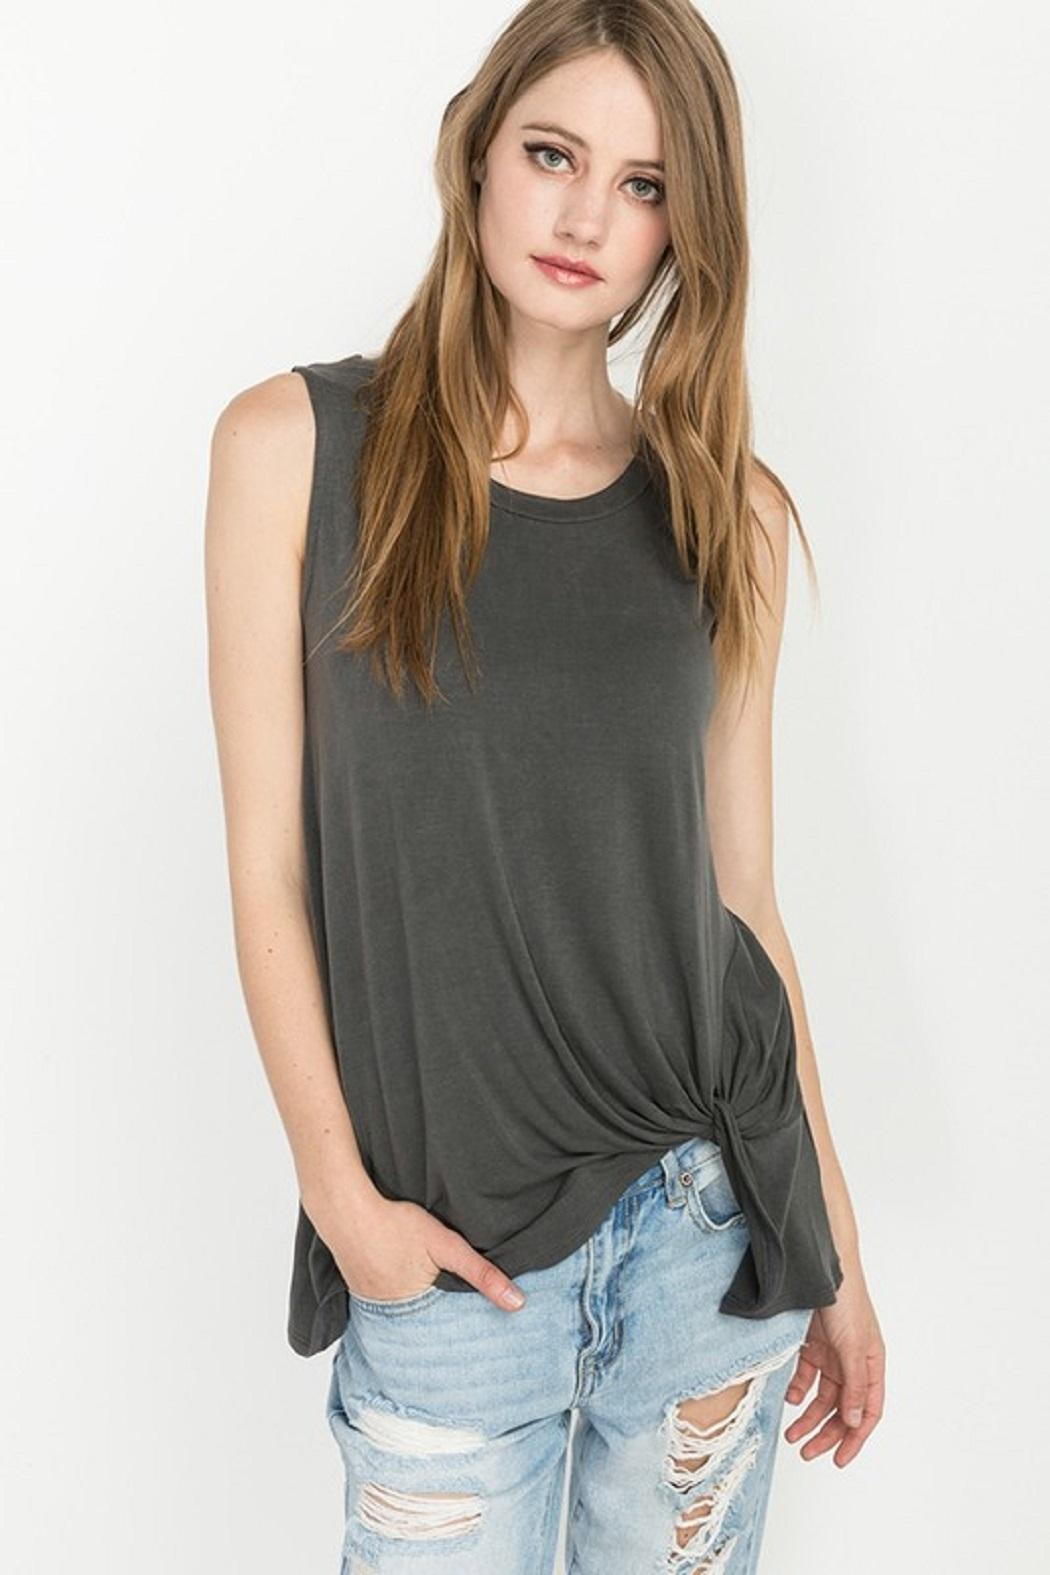 mittoshop knotted tank top from texas by divine designs